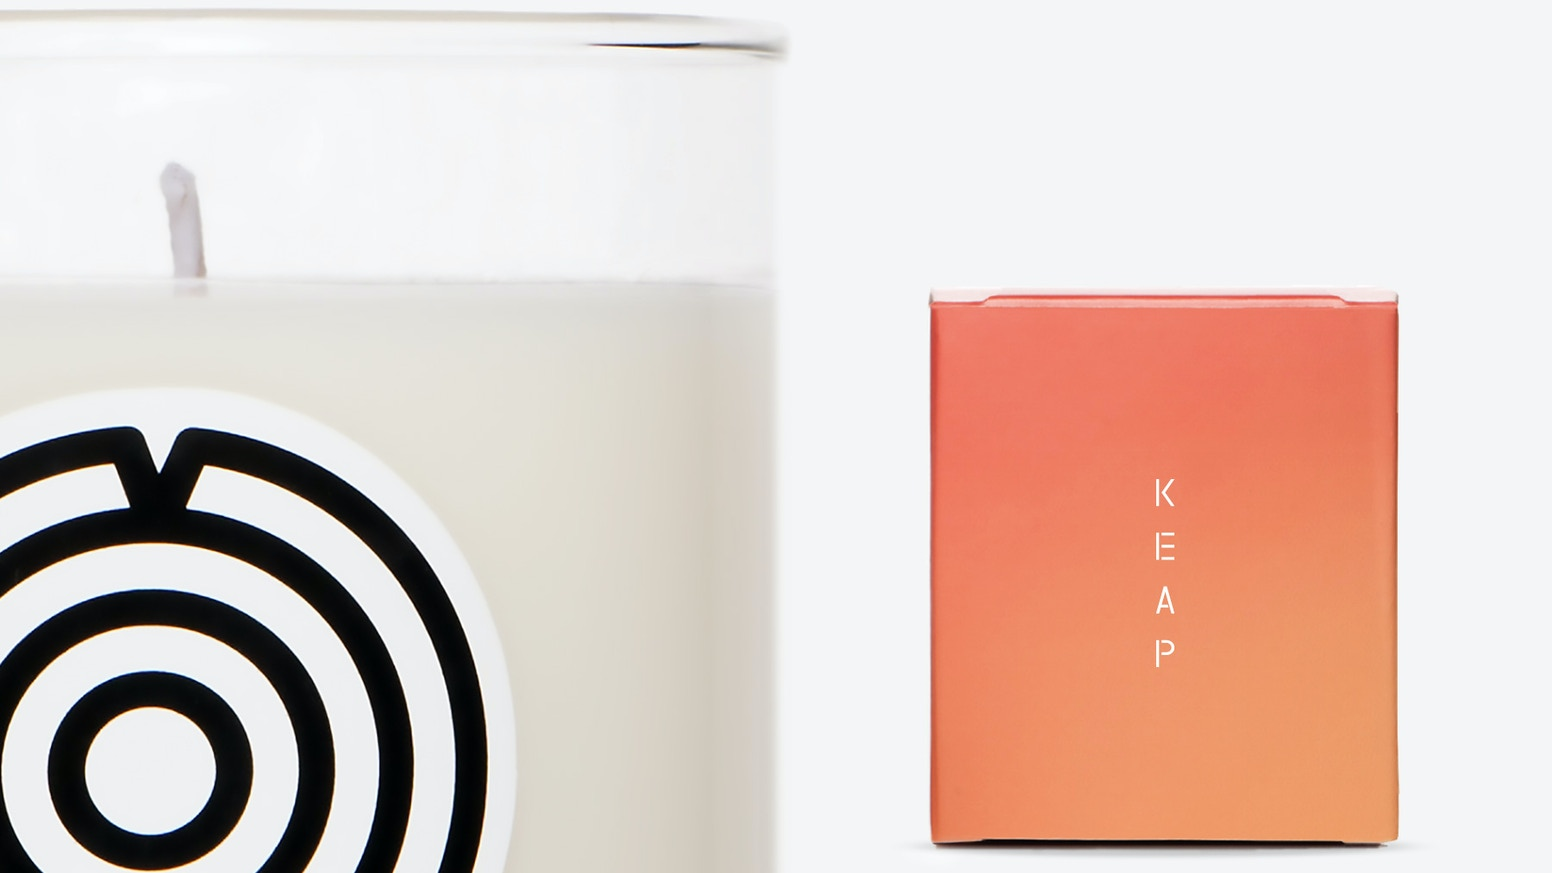 Our candles are now available for purchase at KeapBK.com!